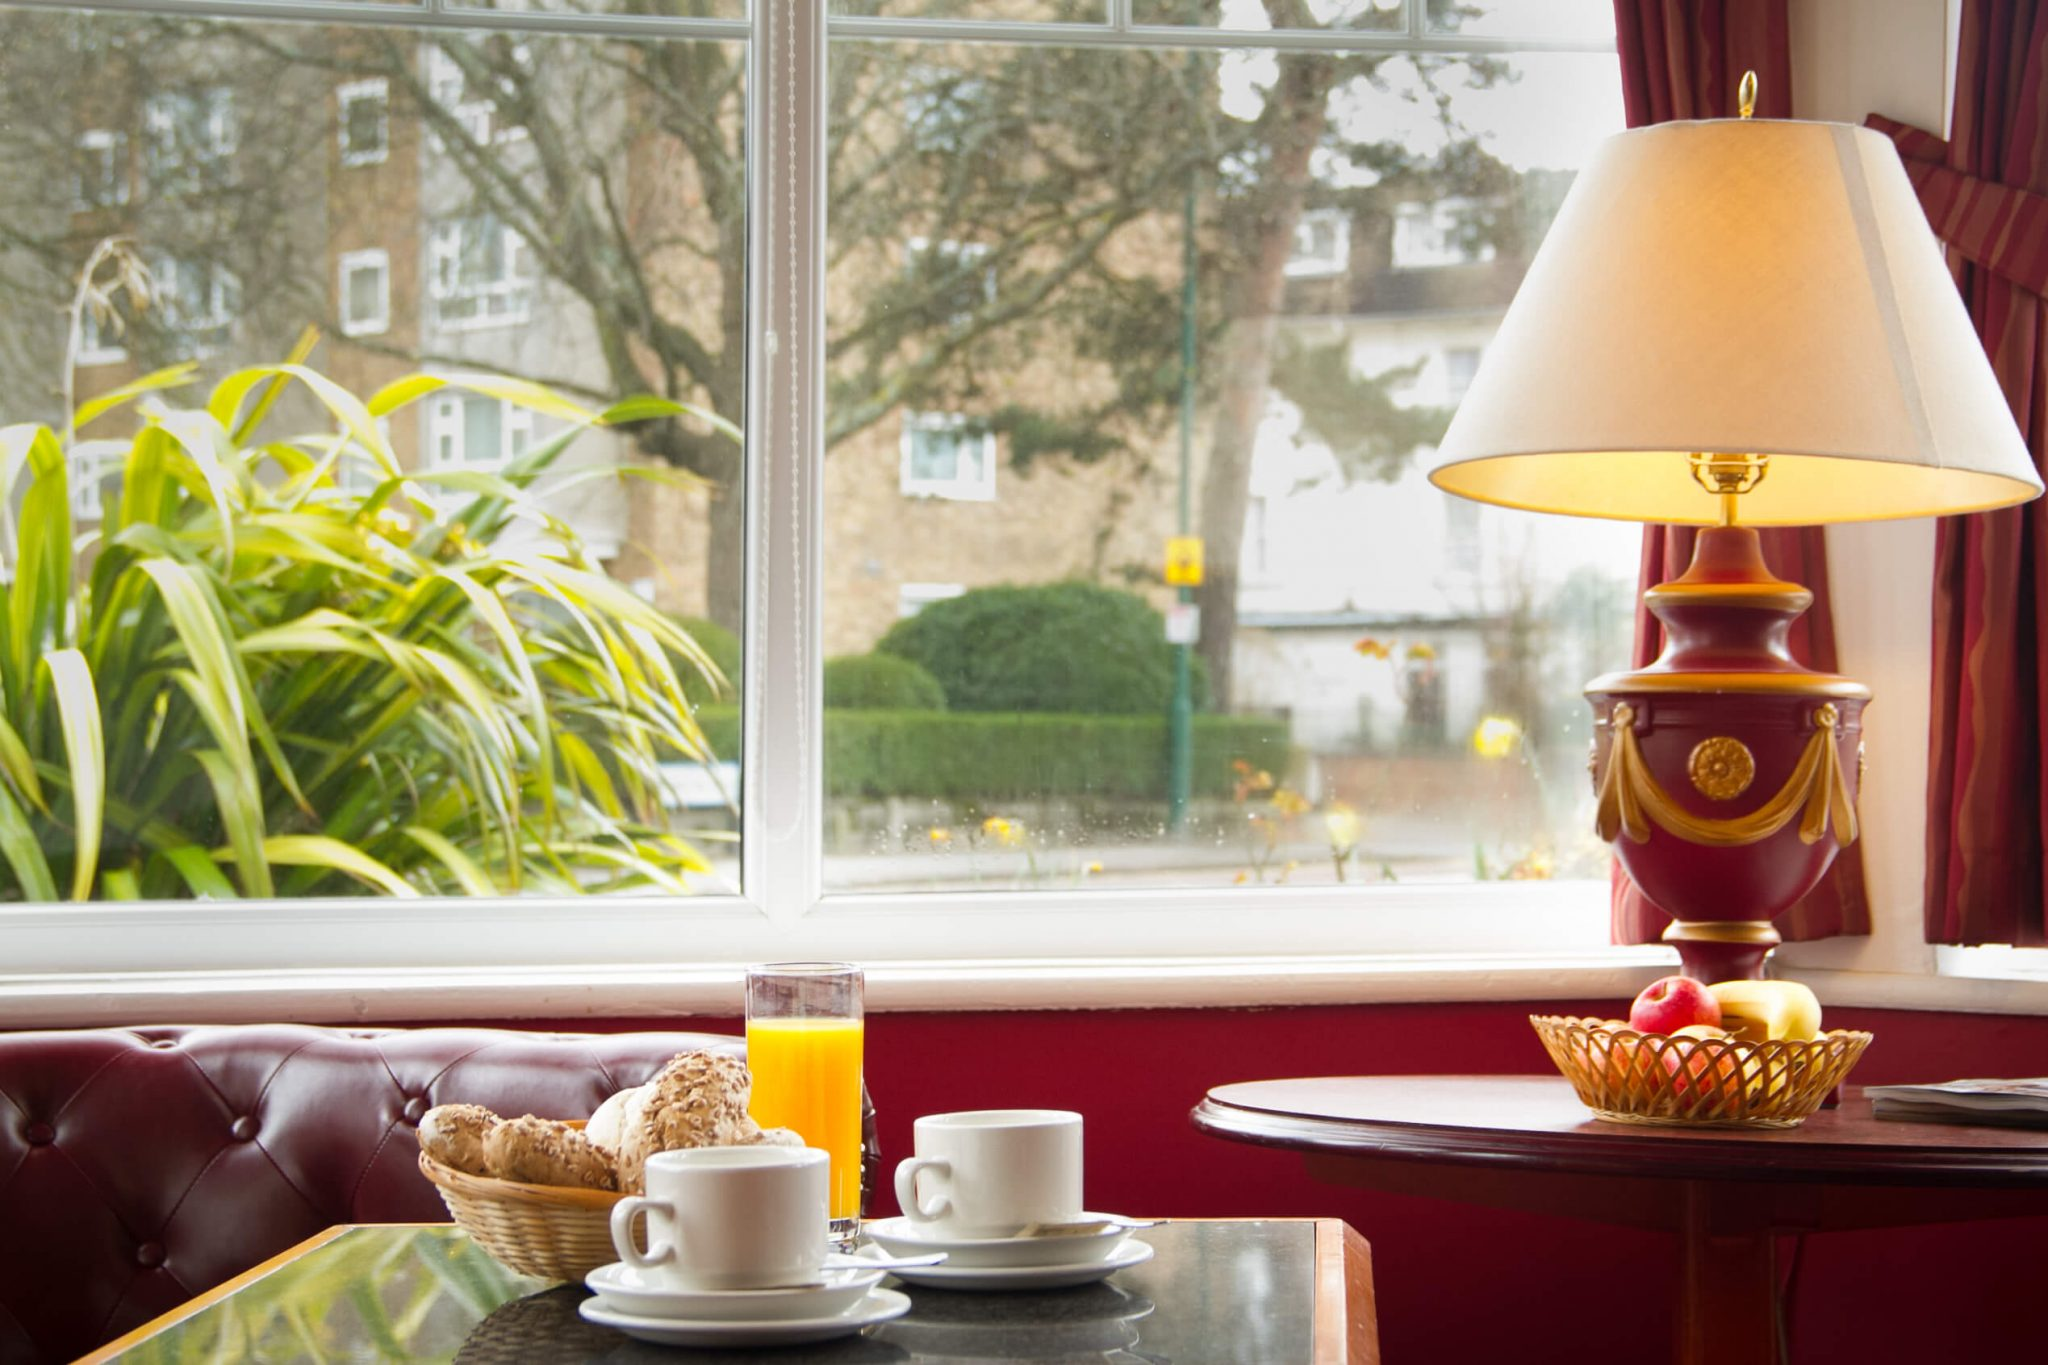 Bournemouth Boulevard Café & Breakfast View - TravelRest Hotels